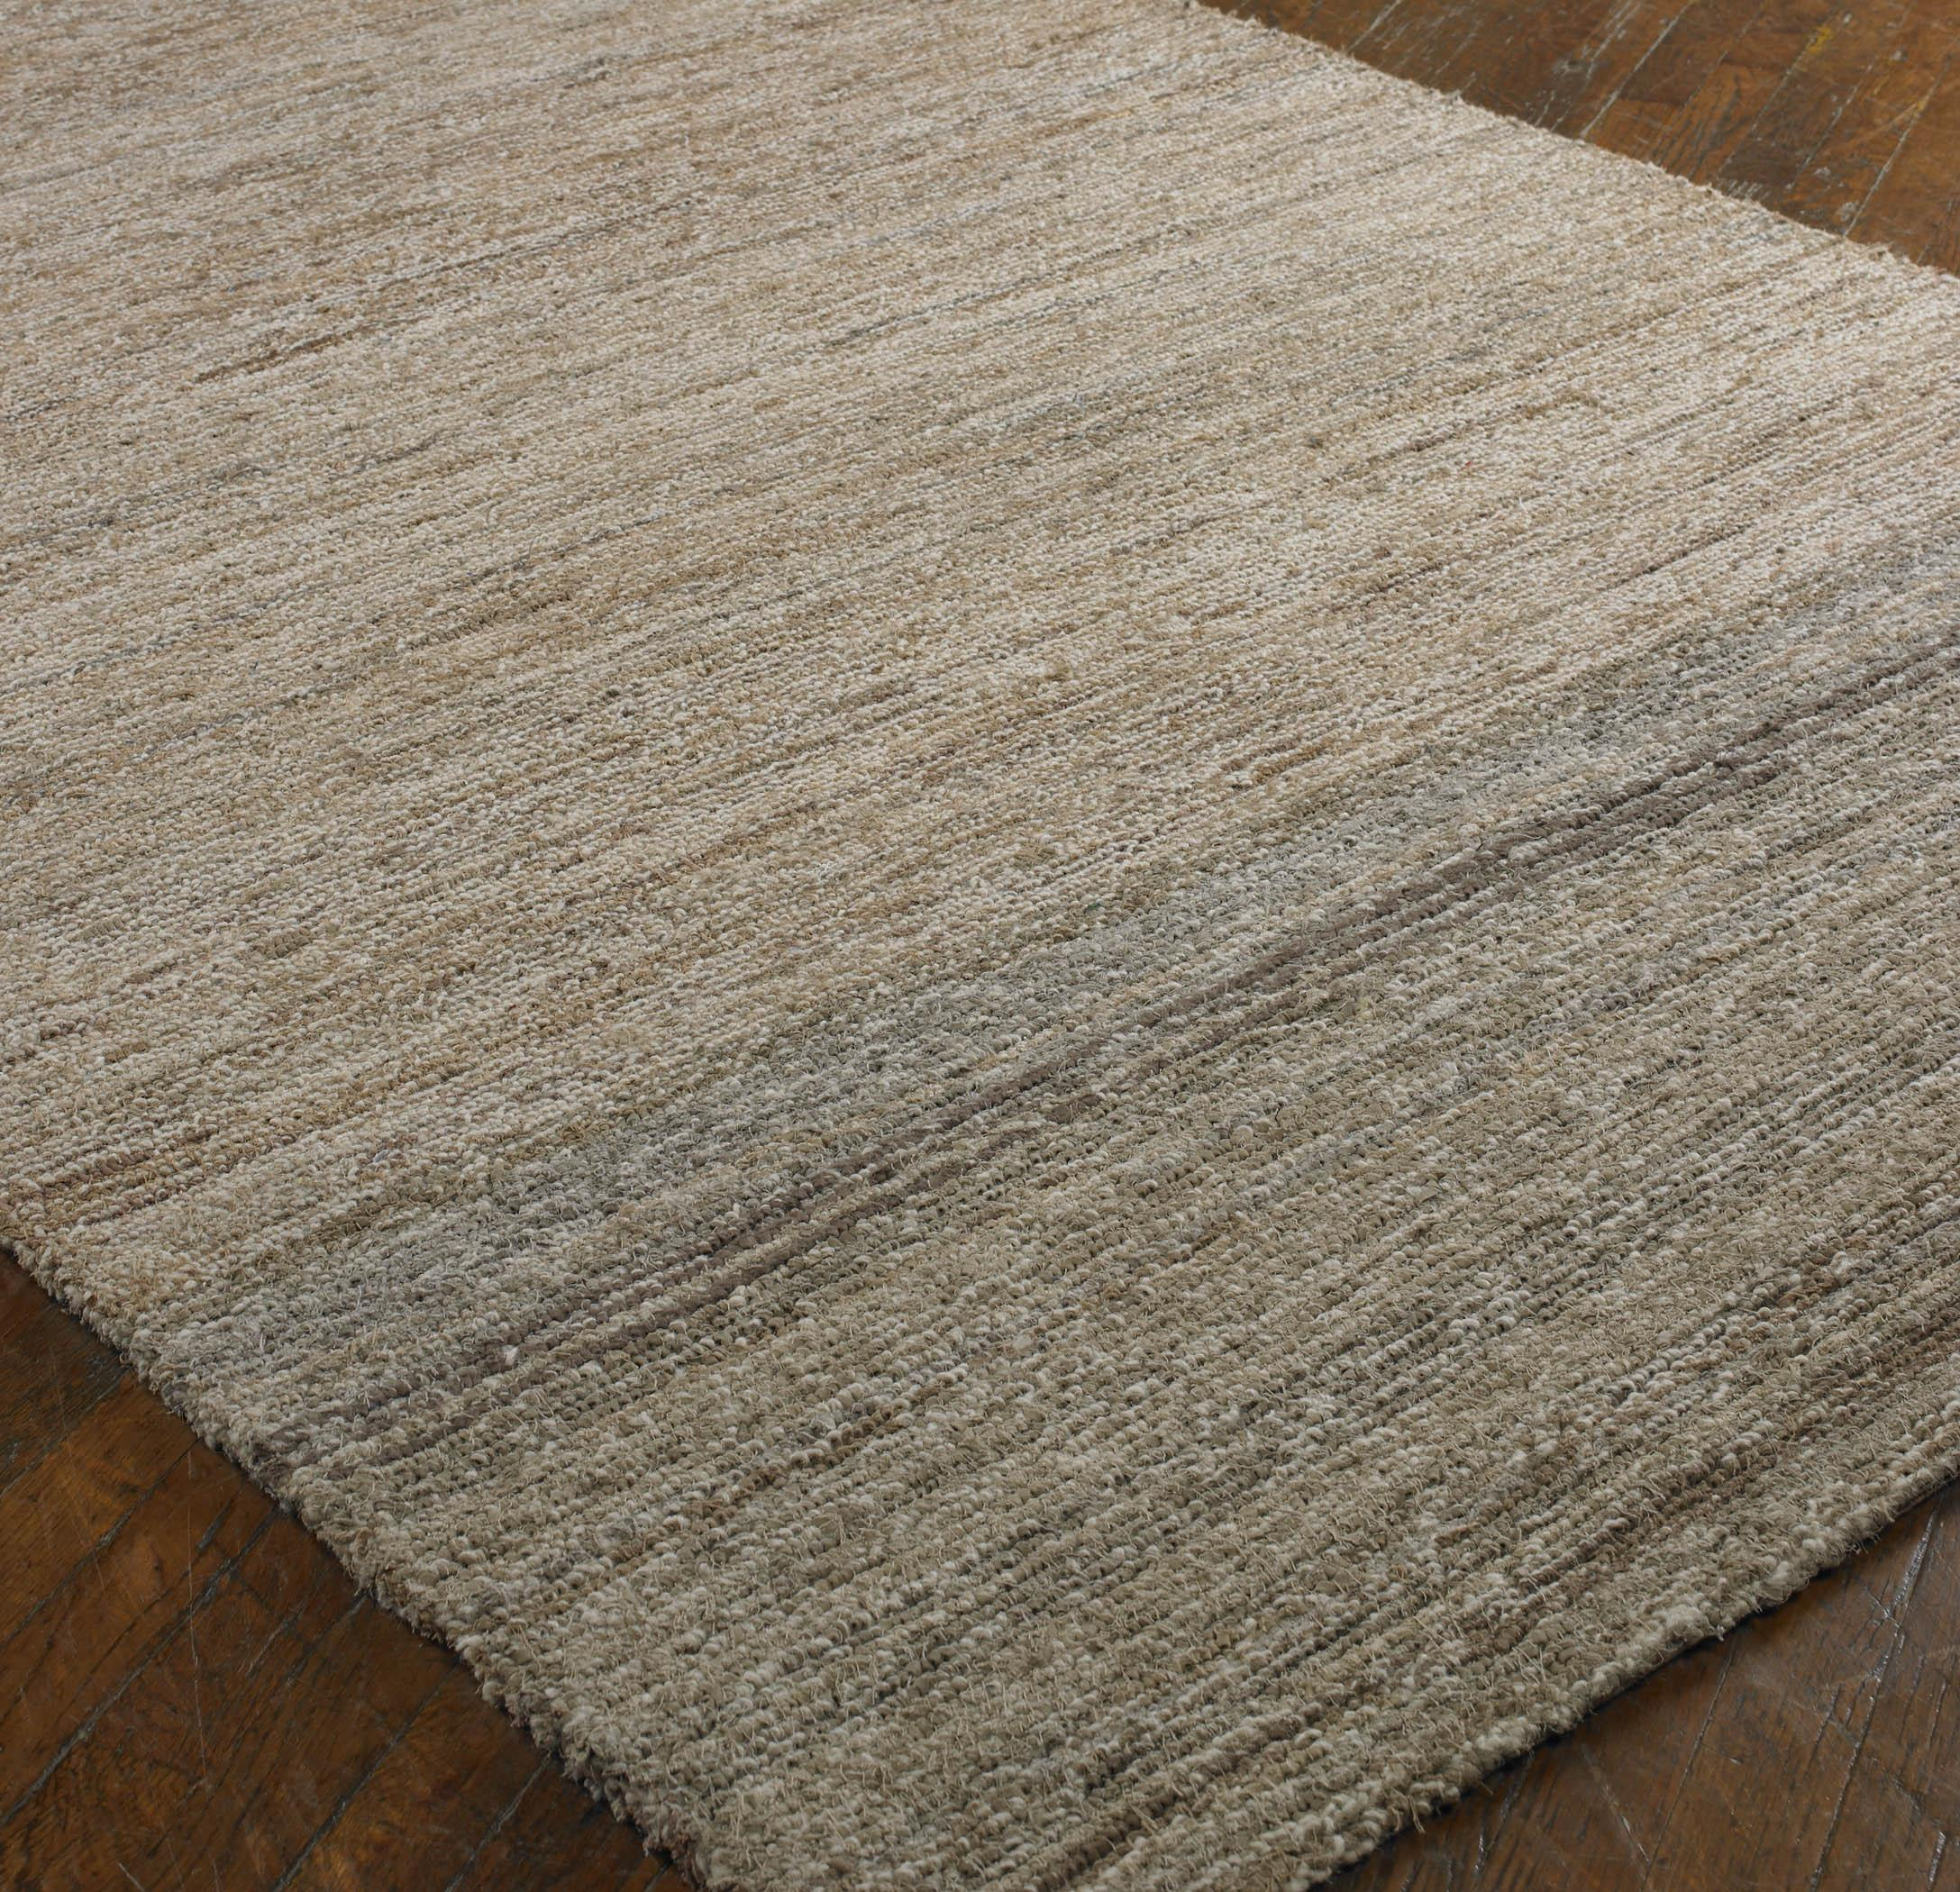 Uttermost Rugs Genoa 5 X 8 Rug - Tan - Item Number: 73053-5